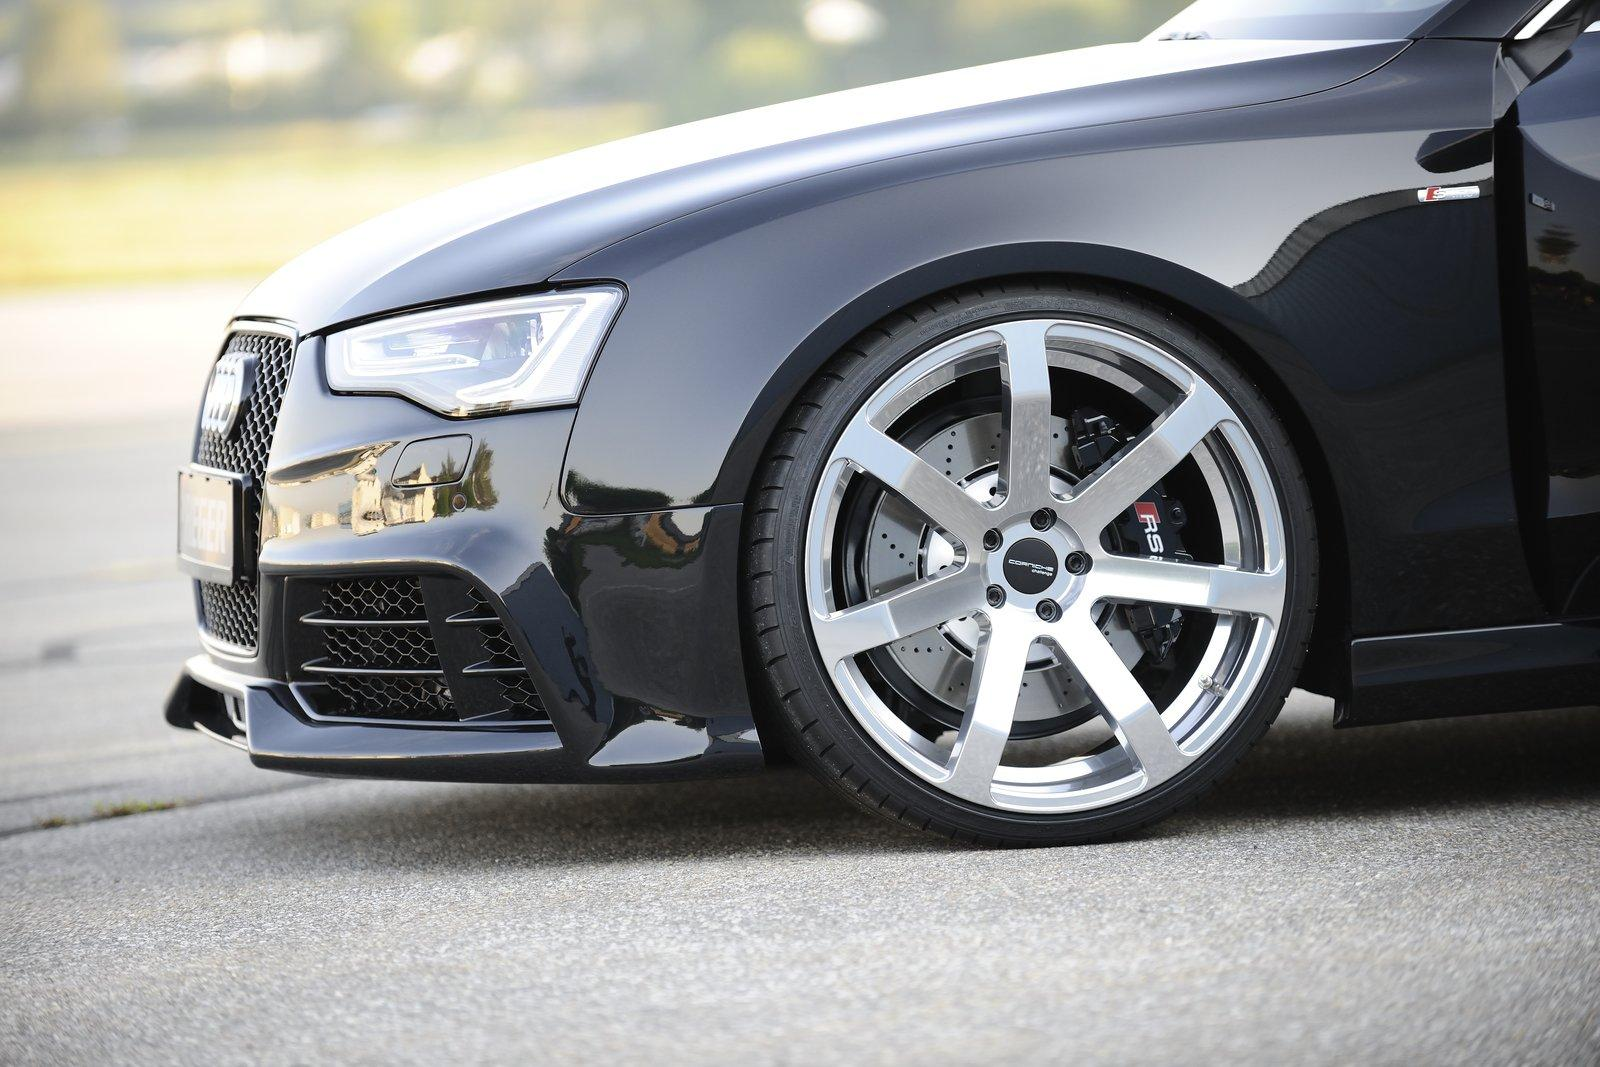 A Audi Performance Parts Tuning Guide - Audi performance parts